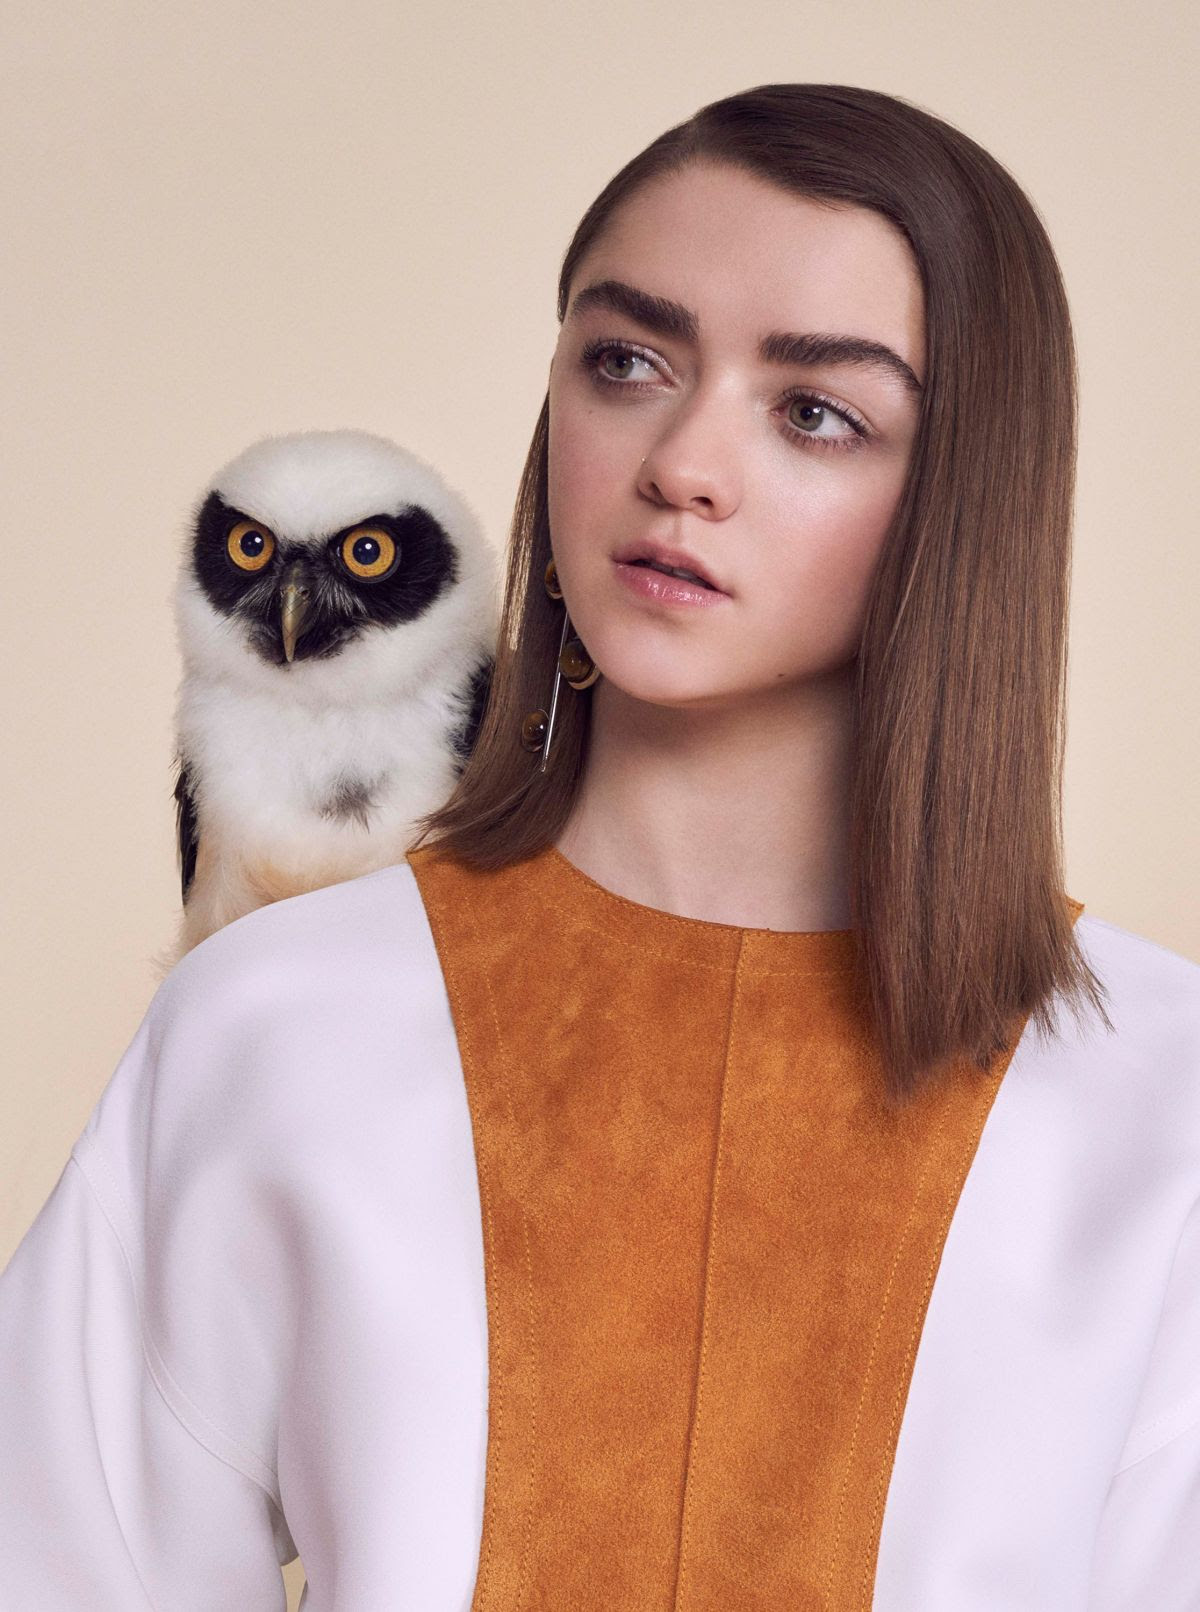 MAISIE WILLIAMS in Instyle Magazine, UK April 2016 Issue